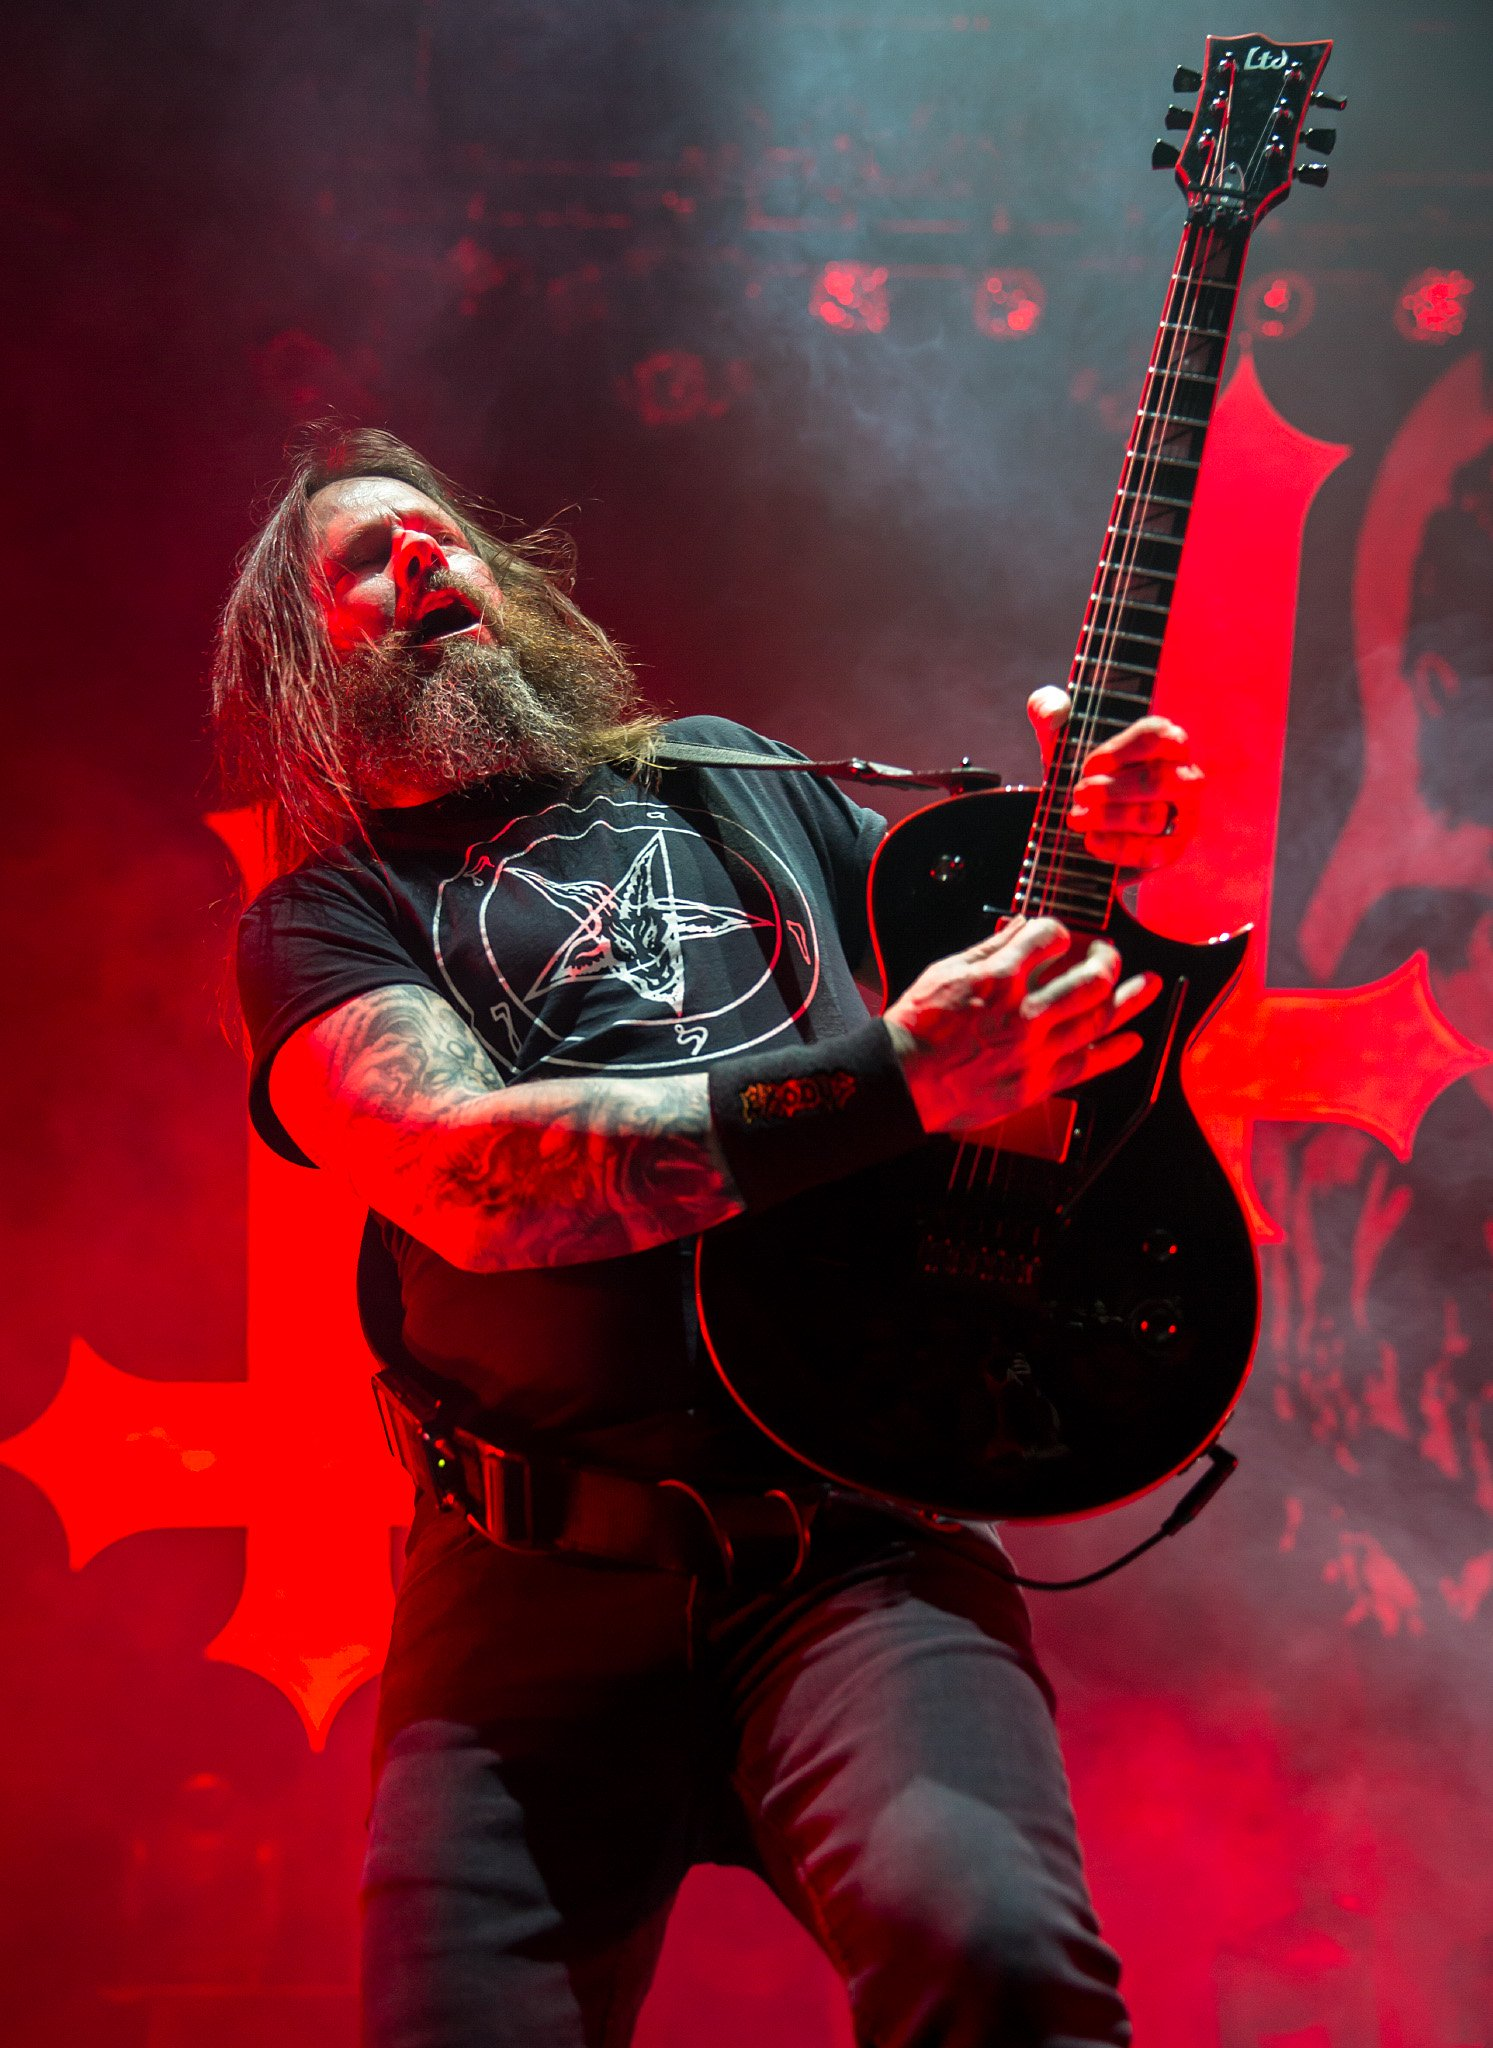 Slayer: Final World Tour – Biljetter ute nu!